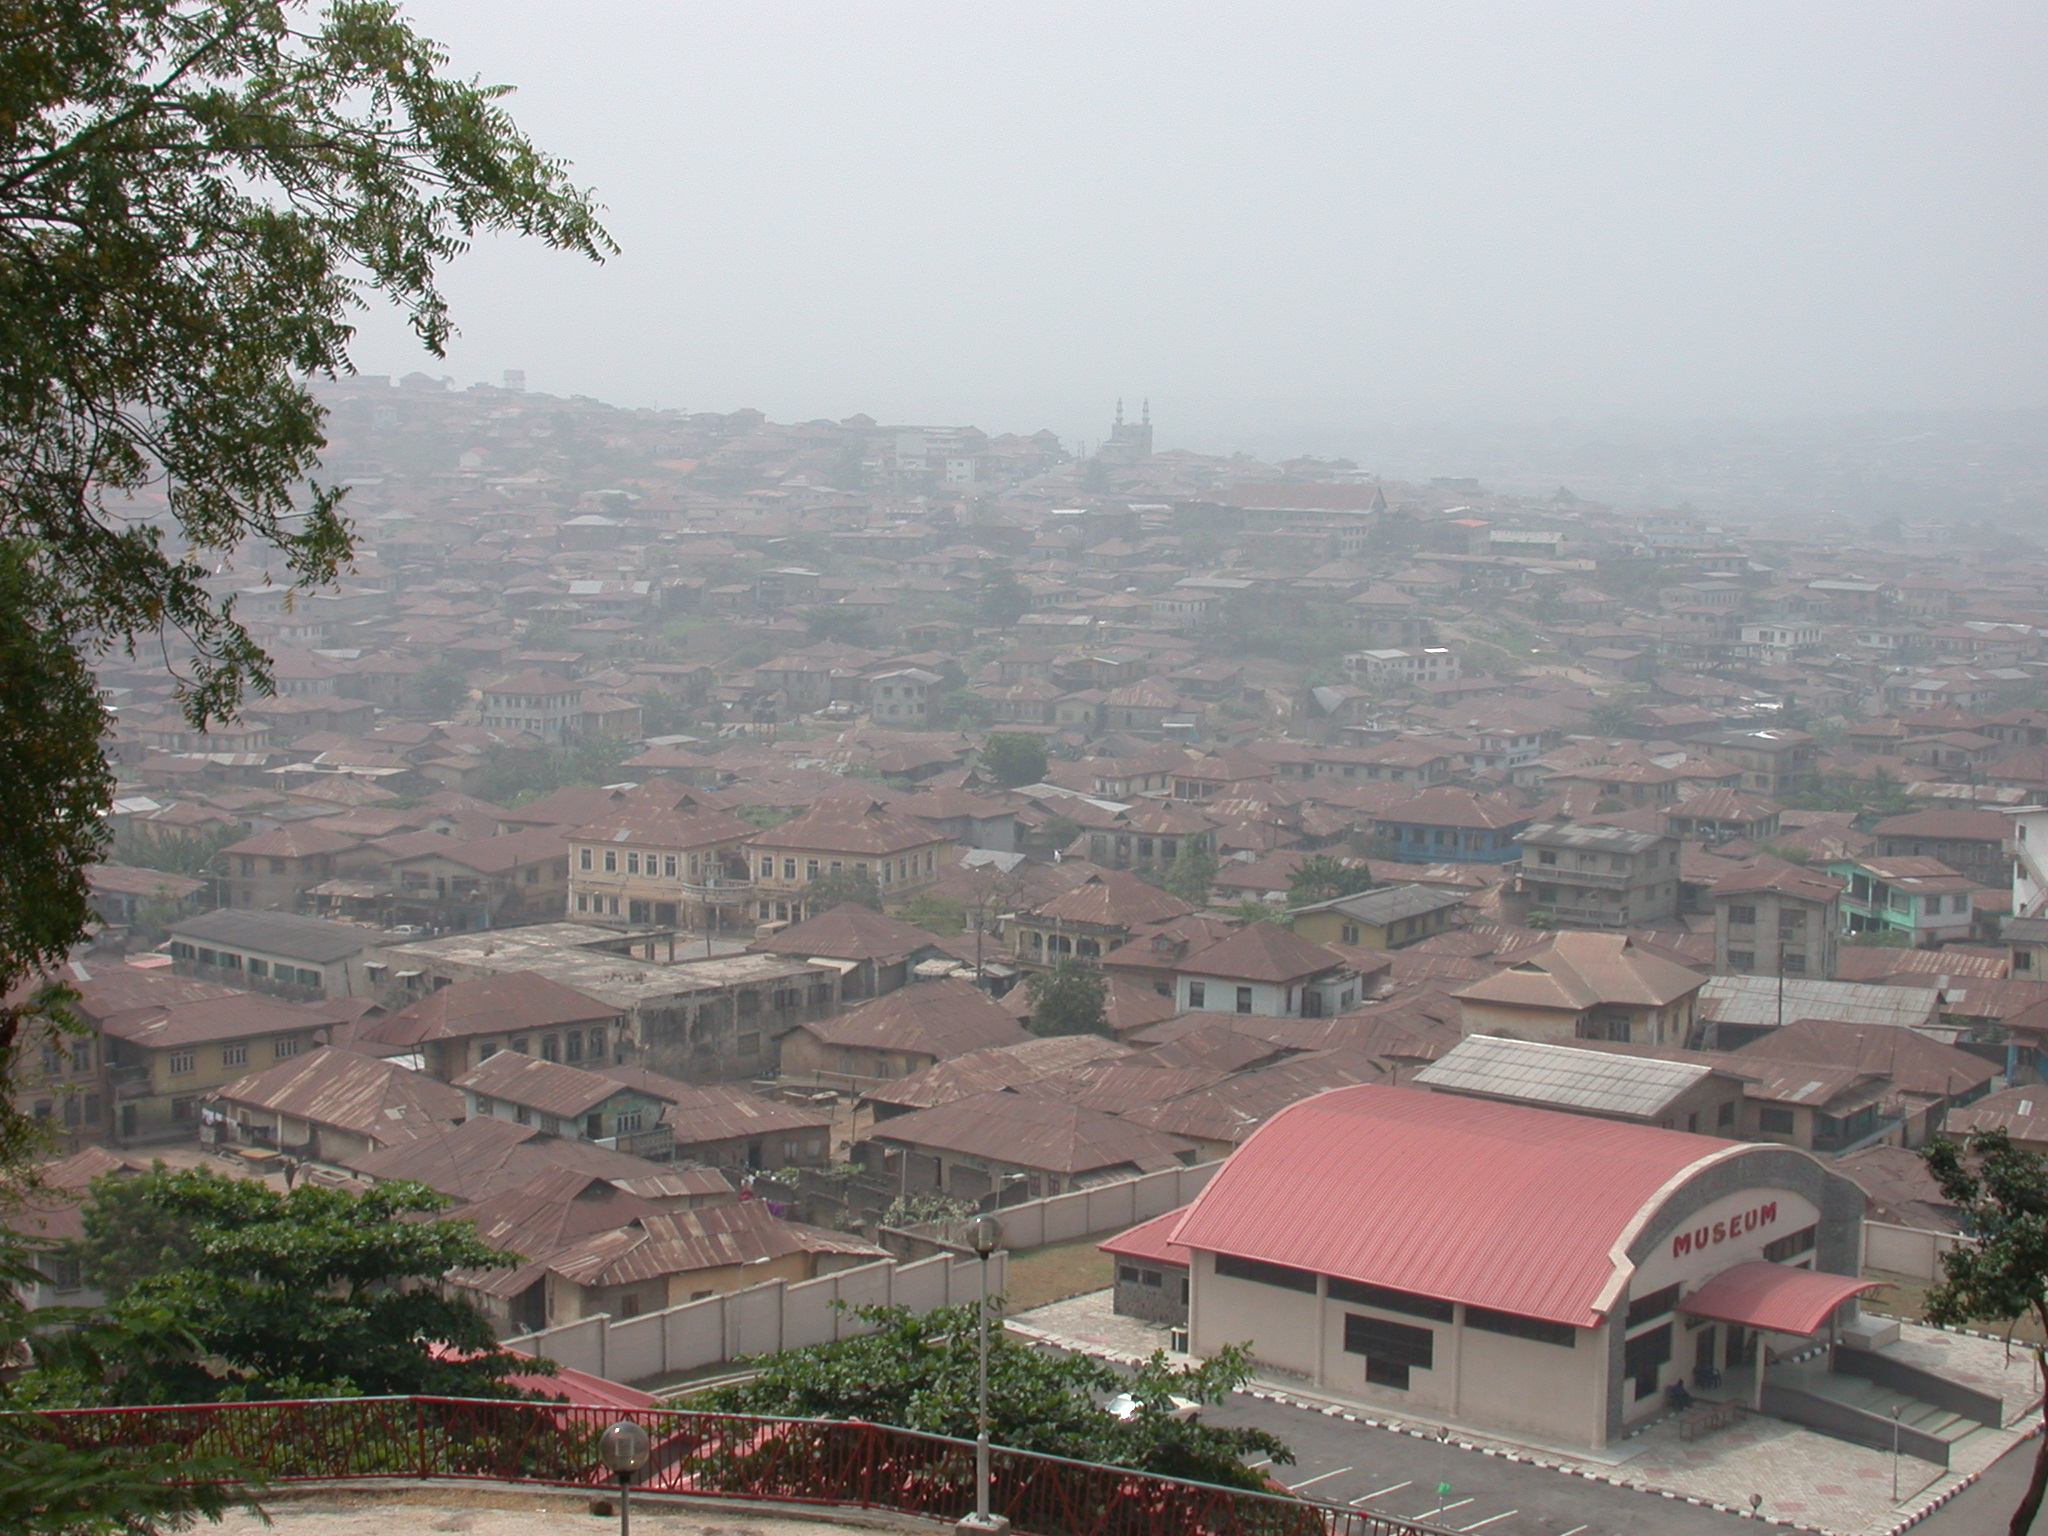 Abeokuta niger City Lisabi pronounced Lishabi